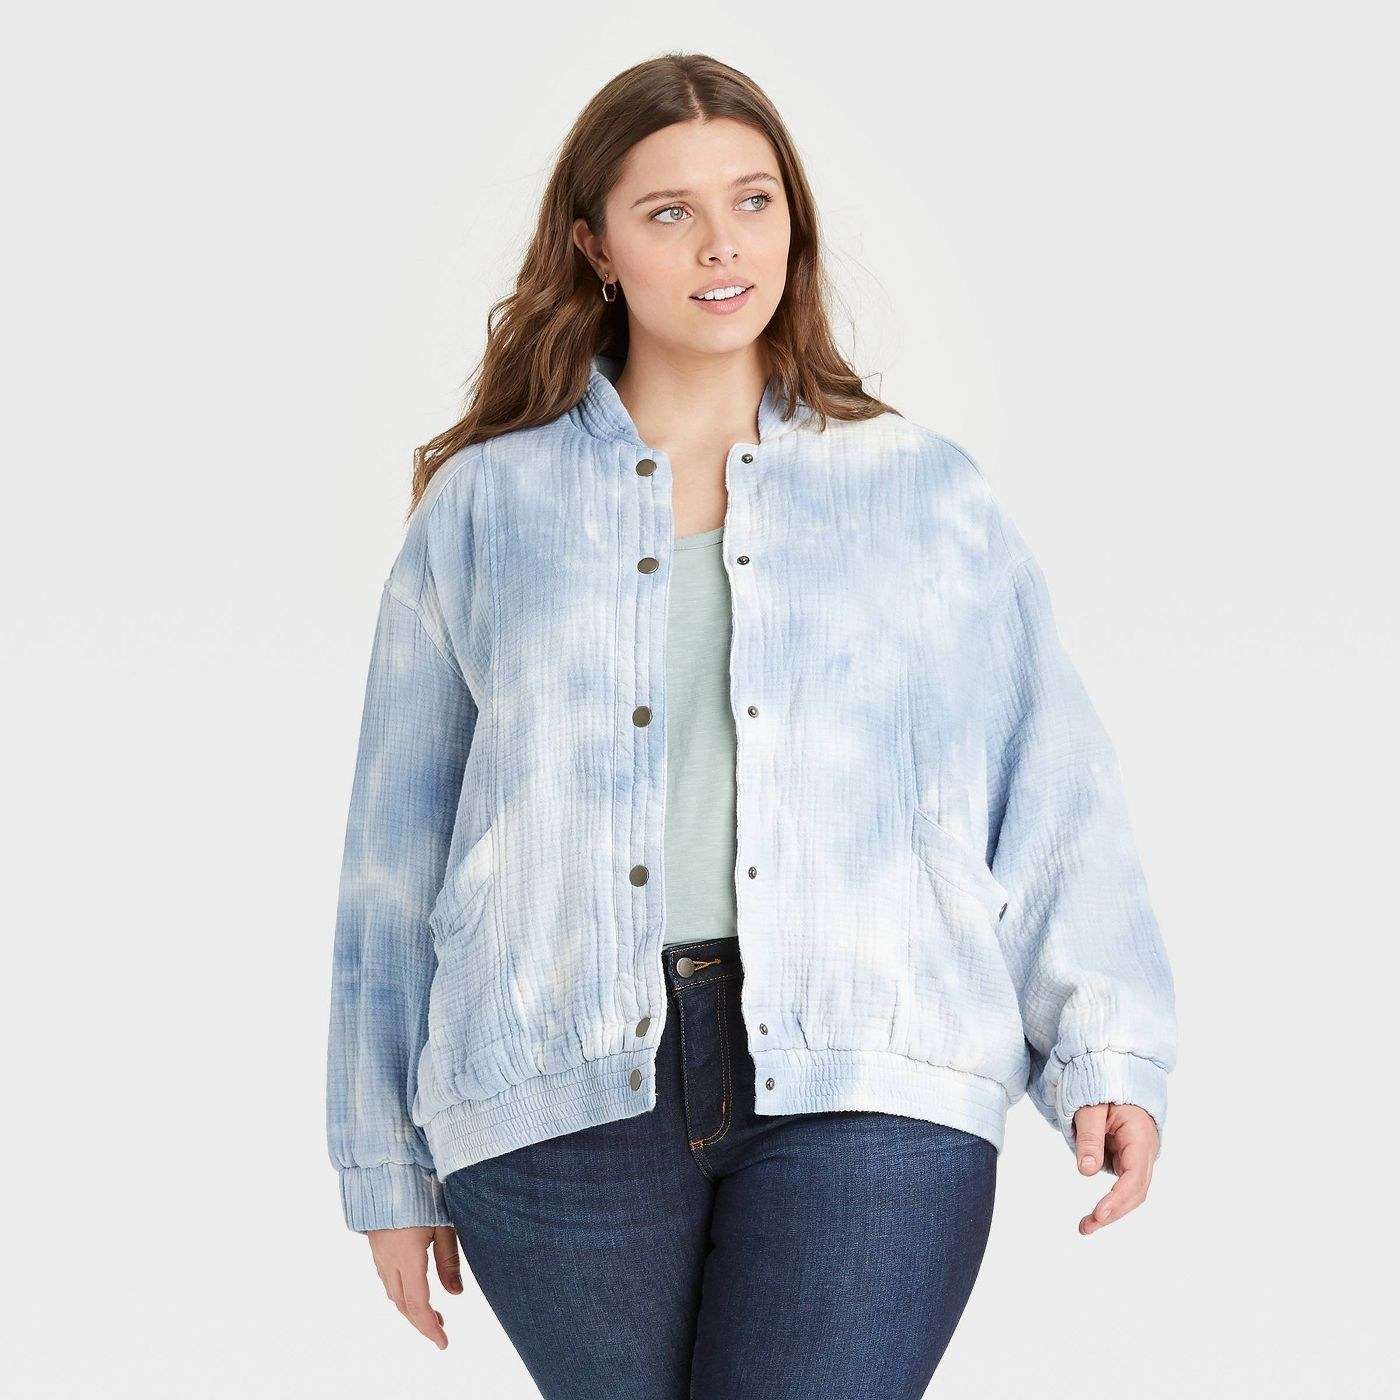 model in light blue tie-dye slouchy button-front jacket with pockets